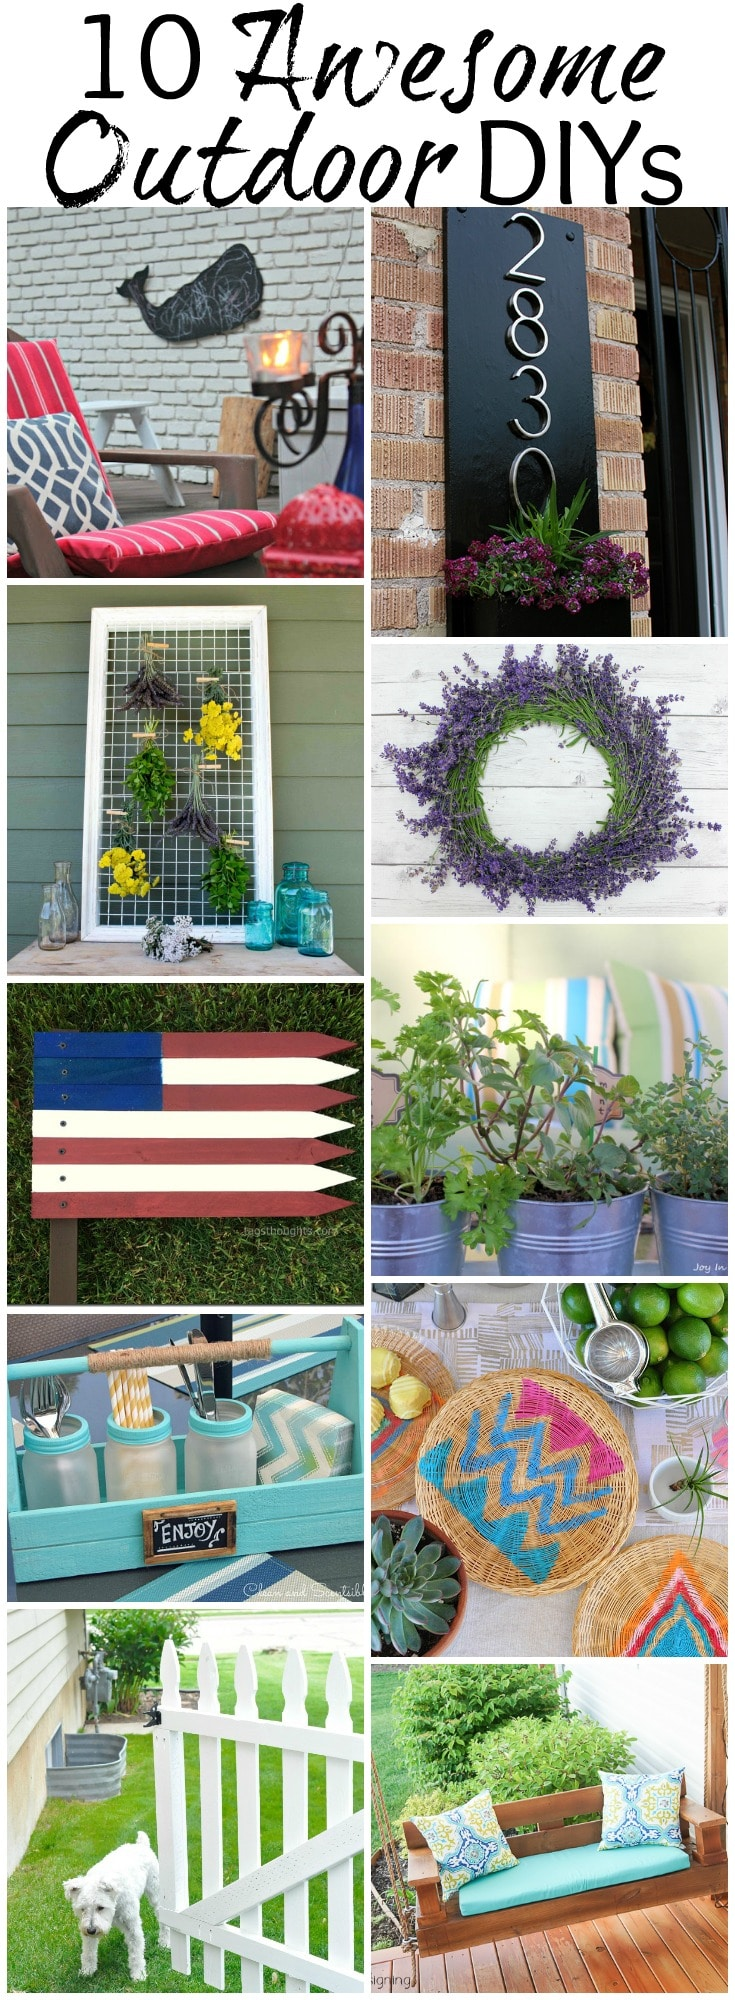 10 Awesome Outdoor DIYs + Work it Wednesday No. 102